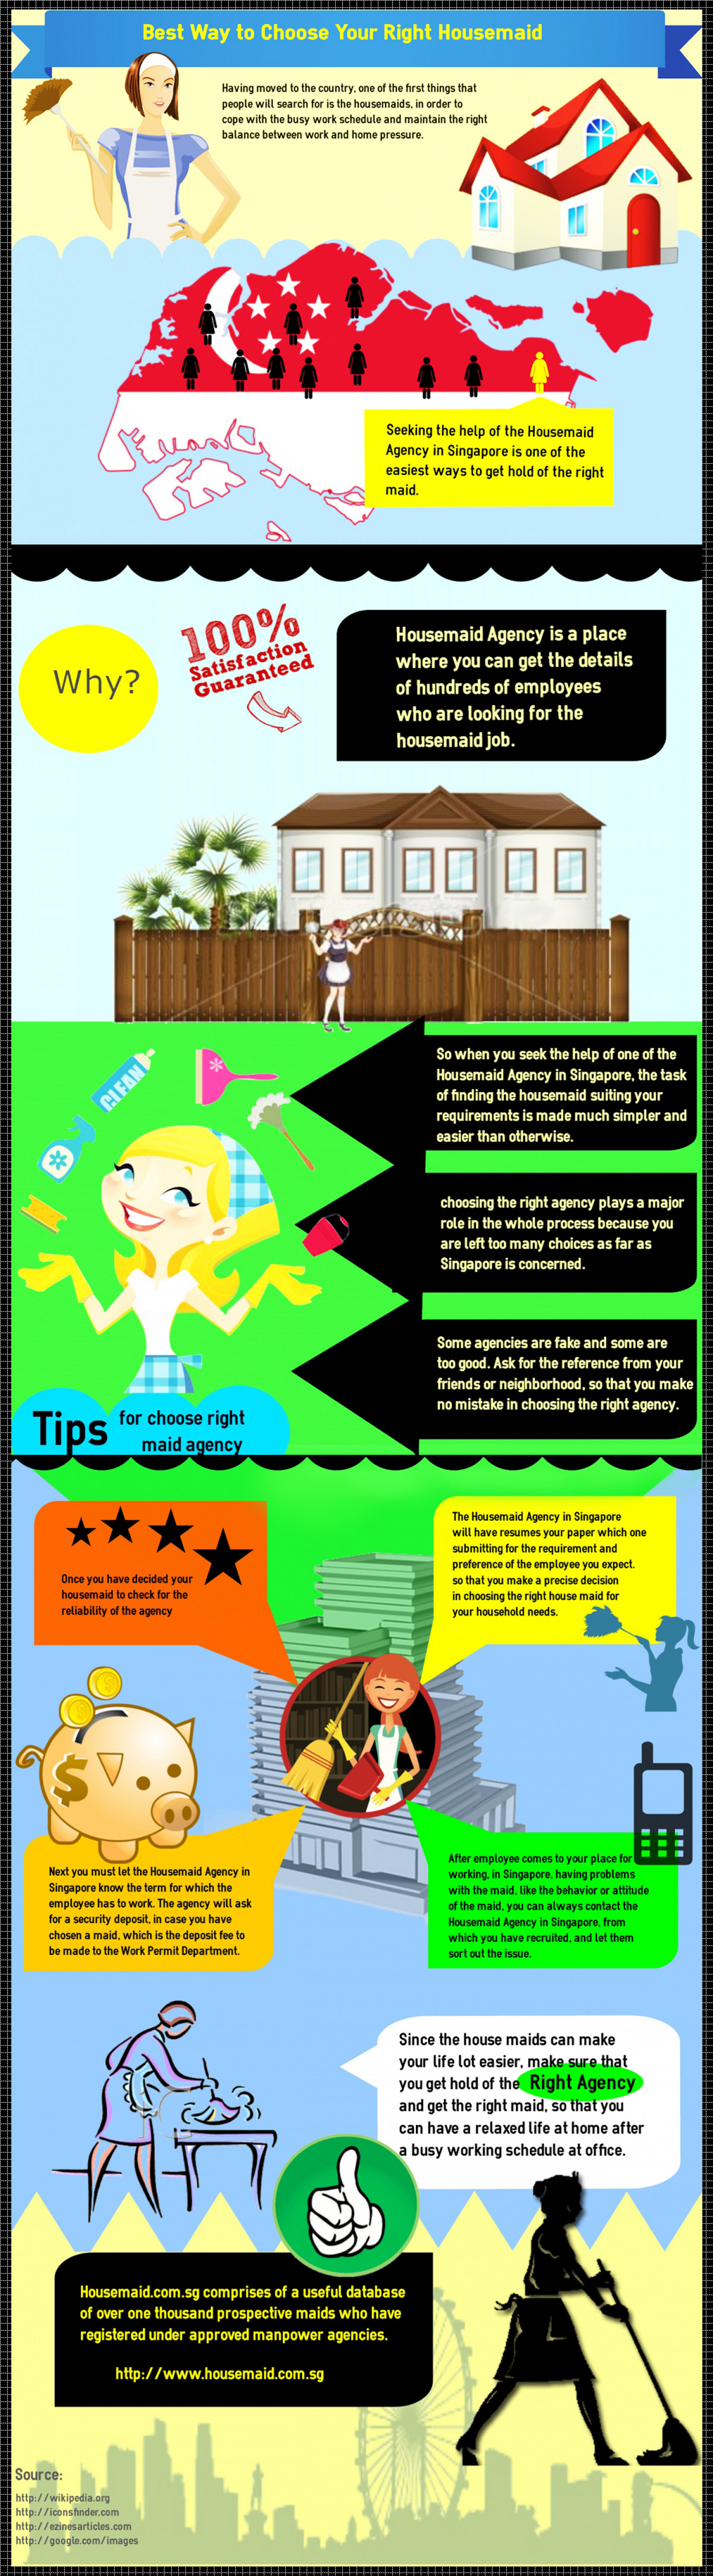 Best Way to Choose Your Right Housemaid Infographic